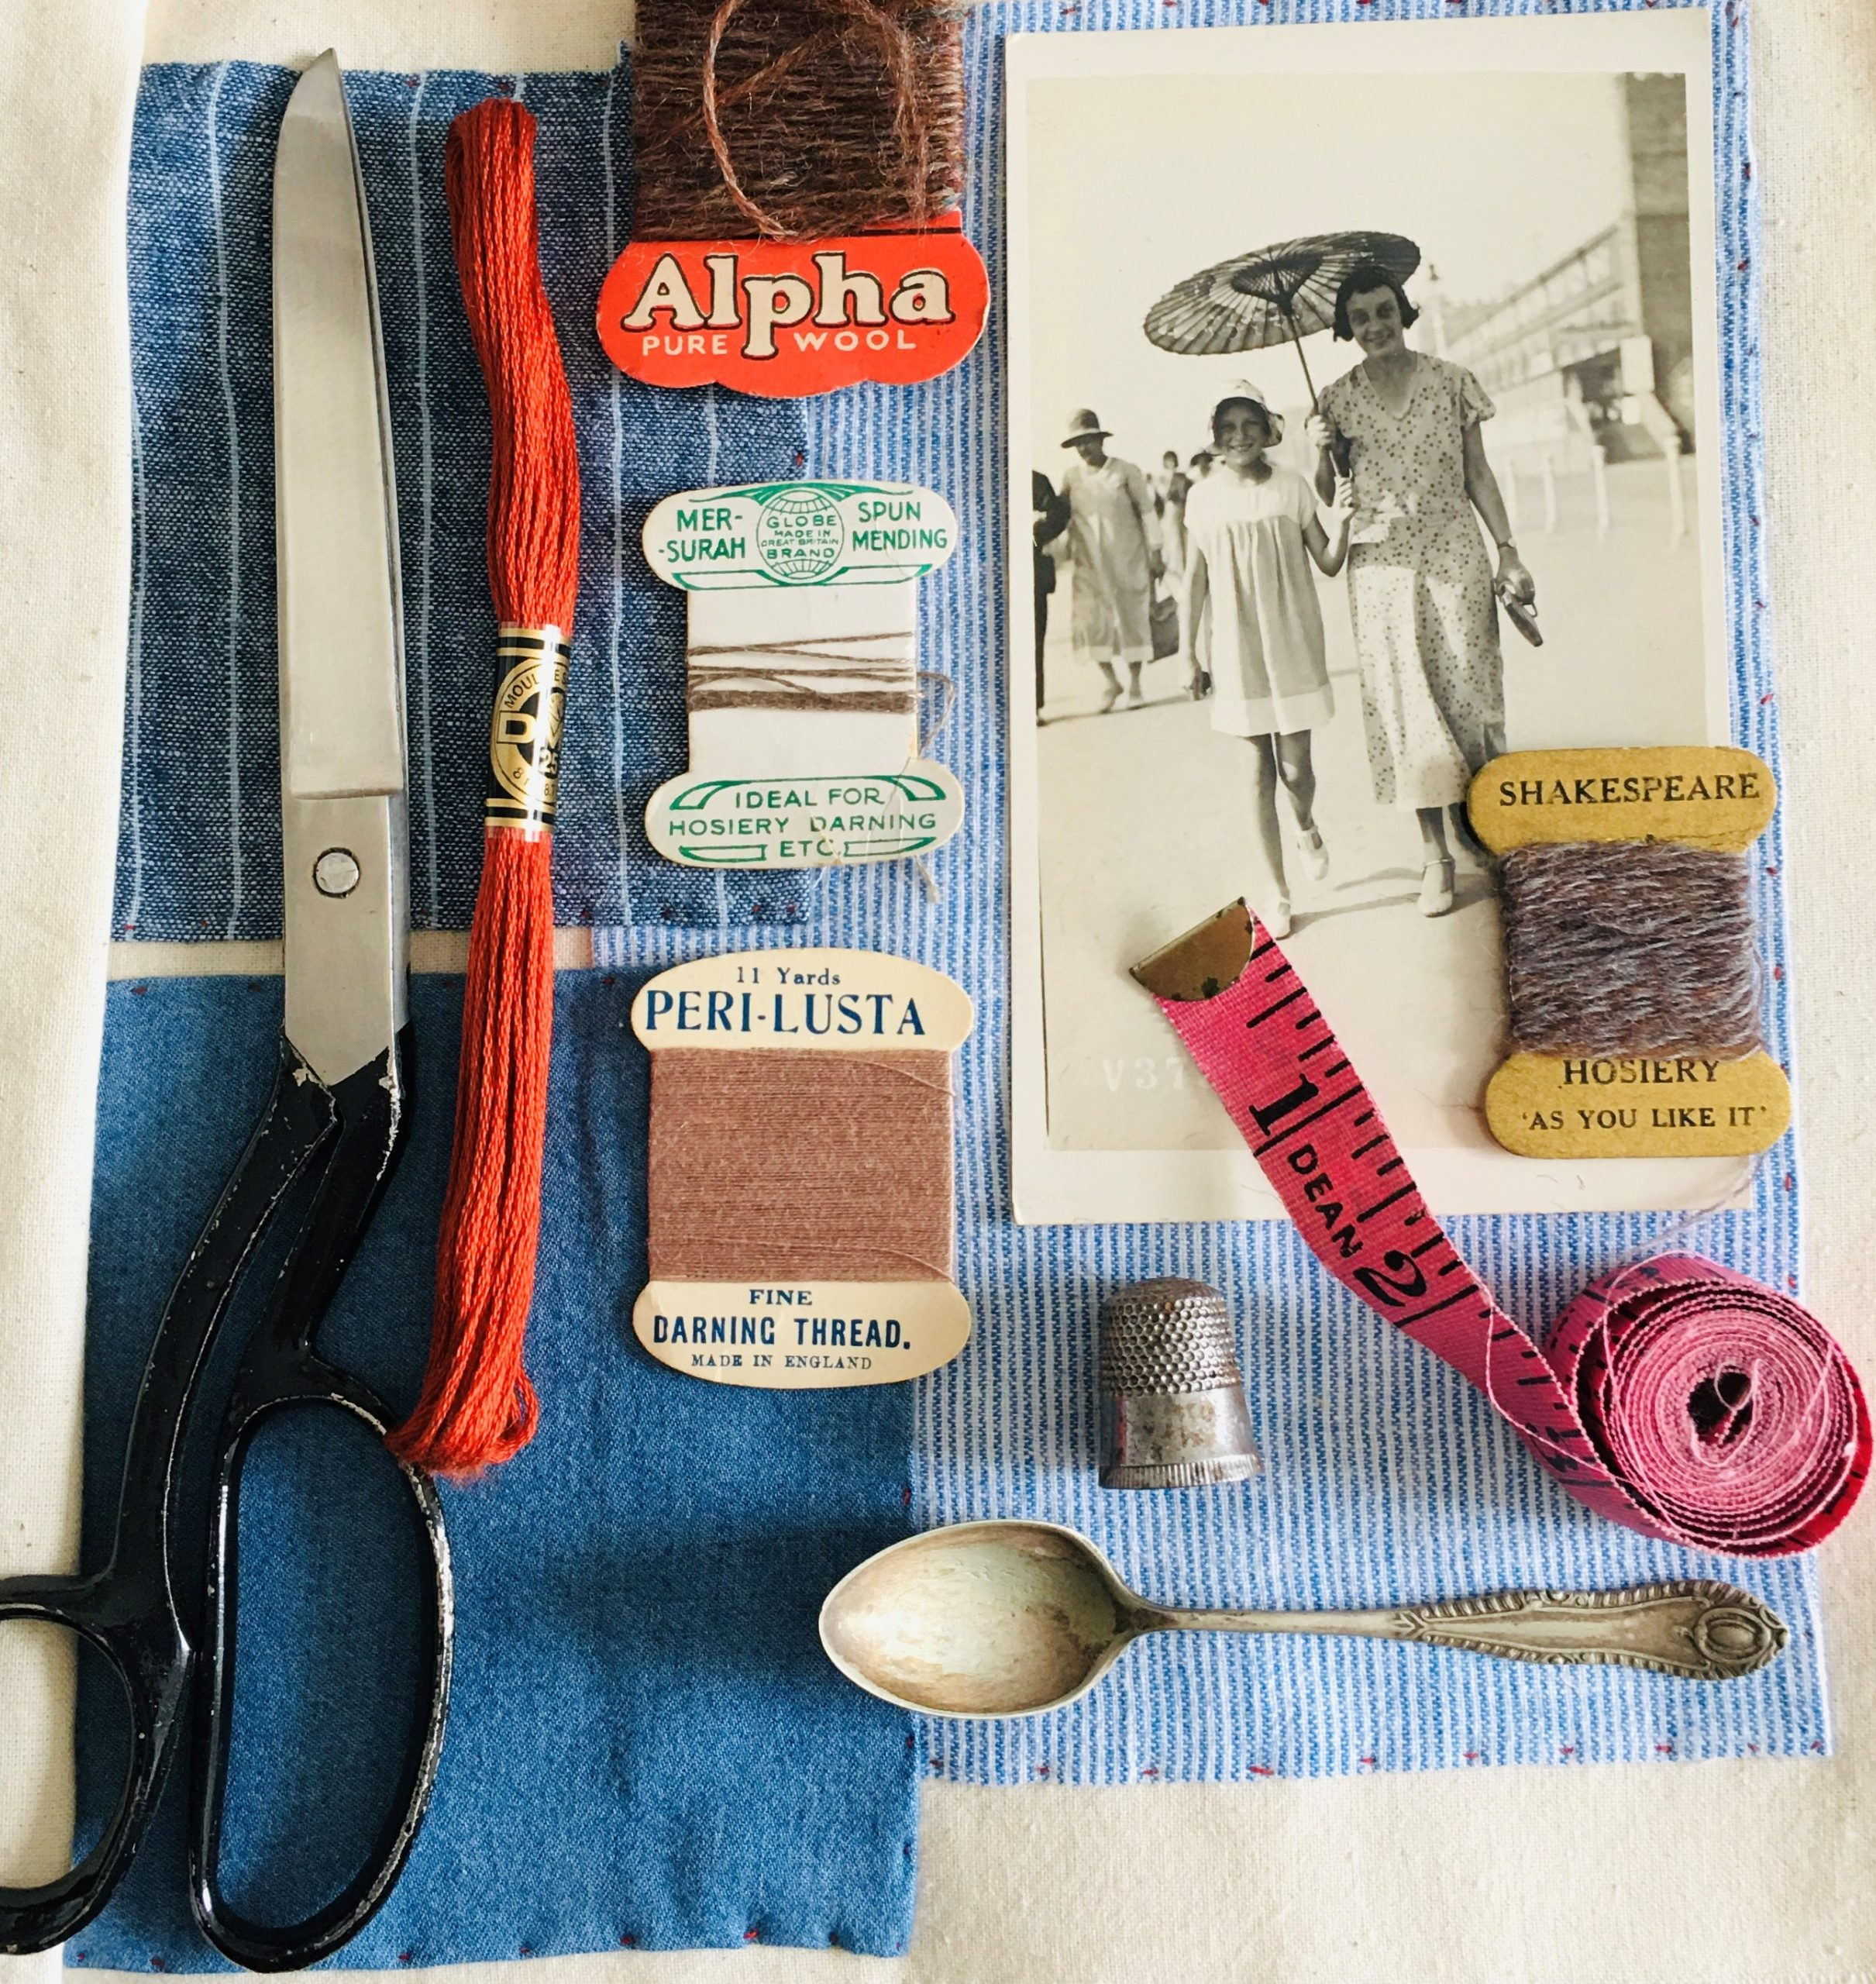 Modern colour photo flatlay of various vintage haberdashery materials including thread, thimble, vintage teaspoon, as well as vintage photos and a pair of scissors